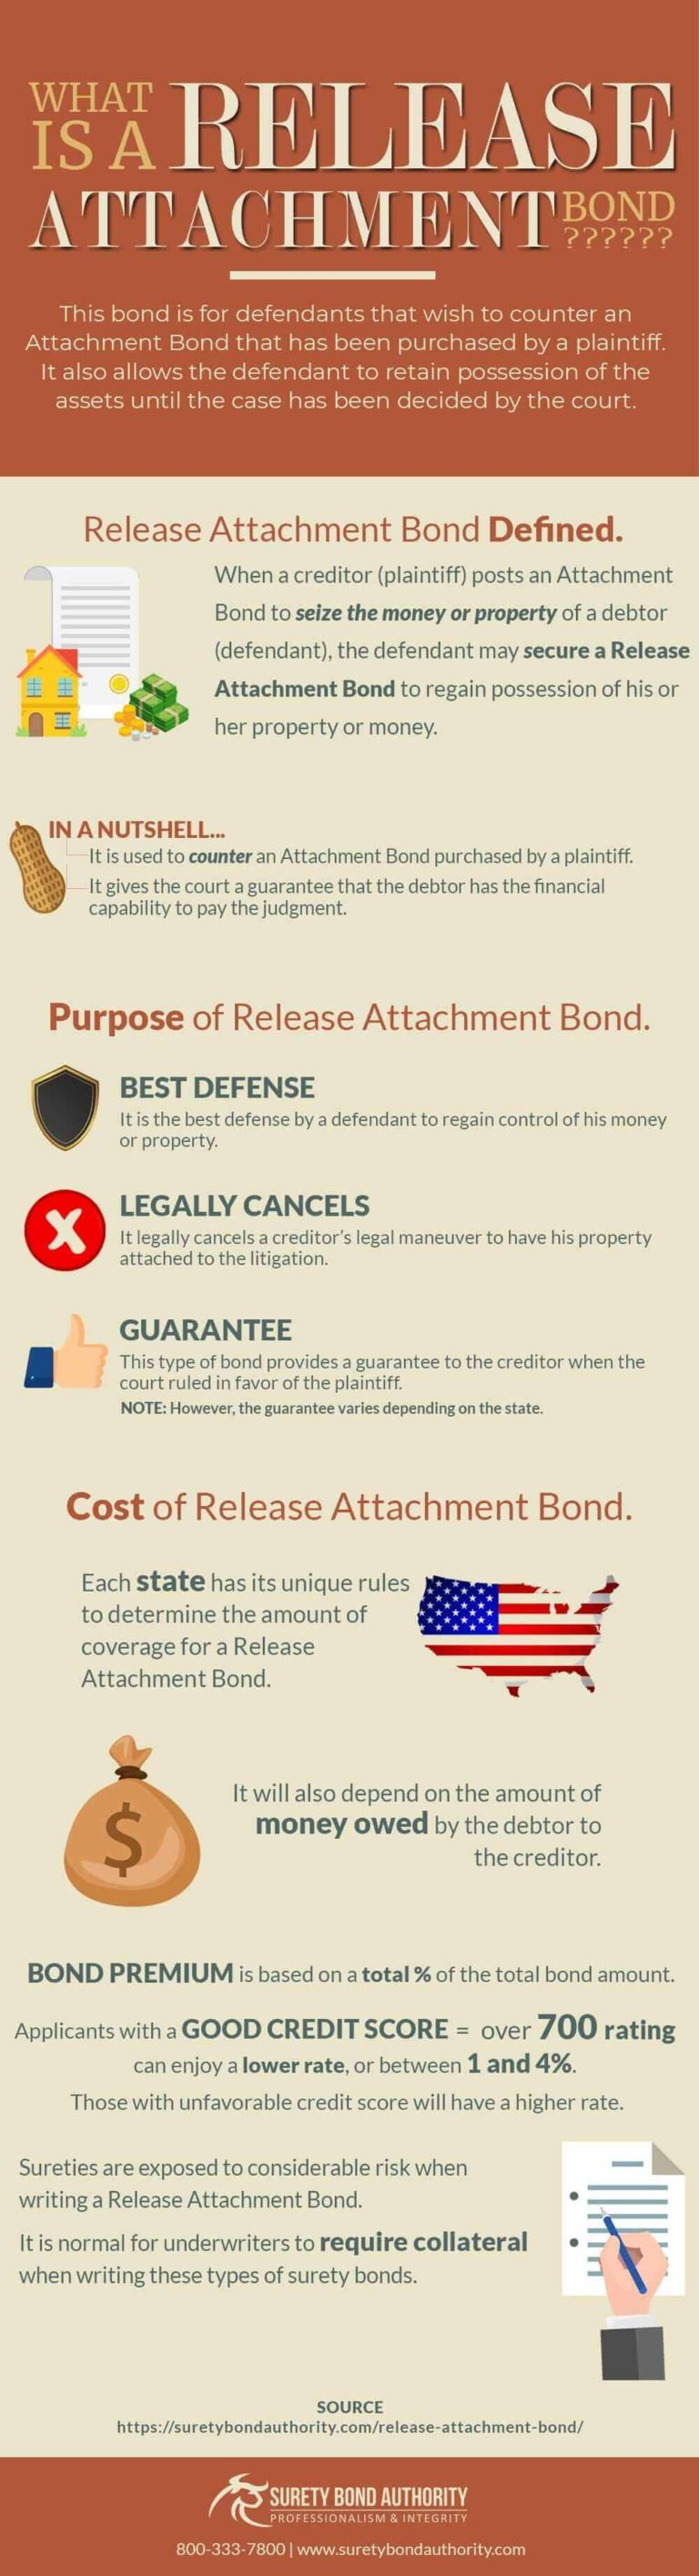 Release Attachment Bond Infographic